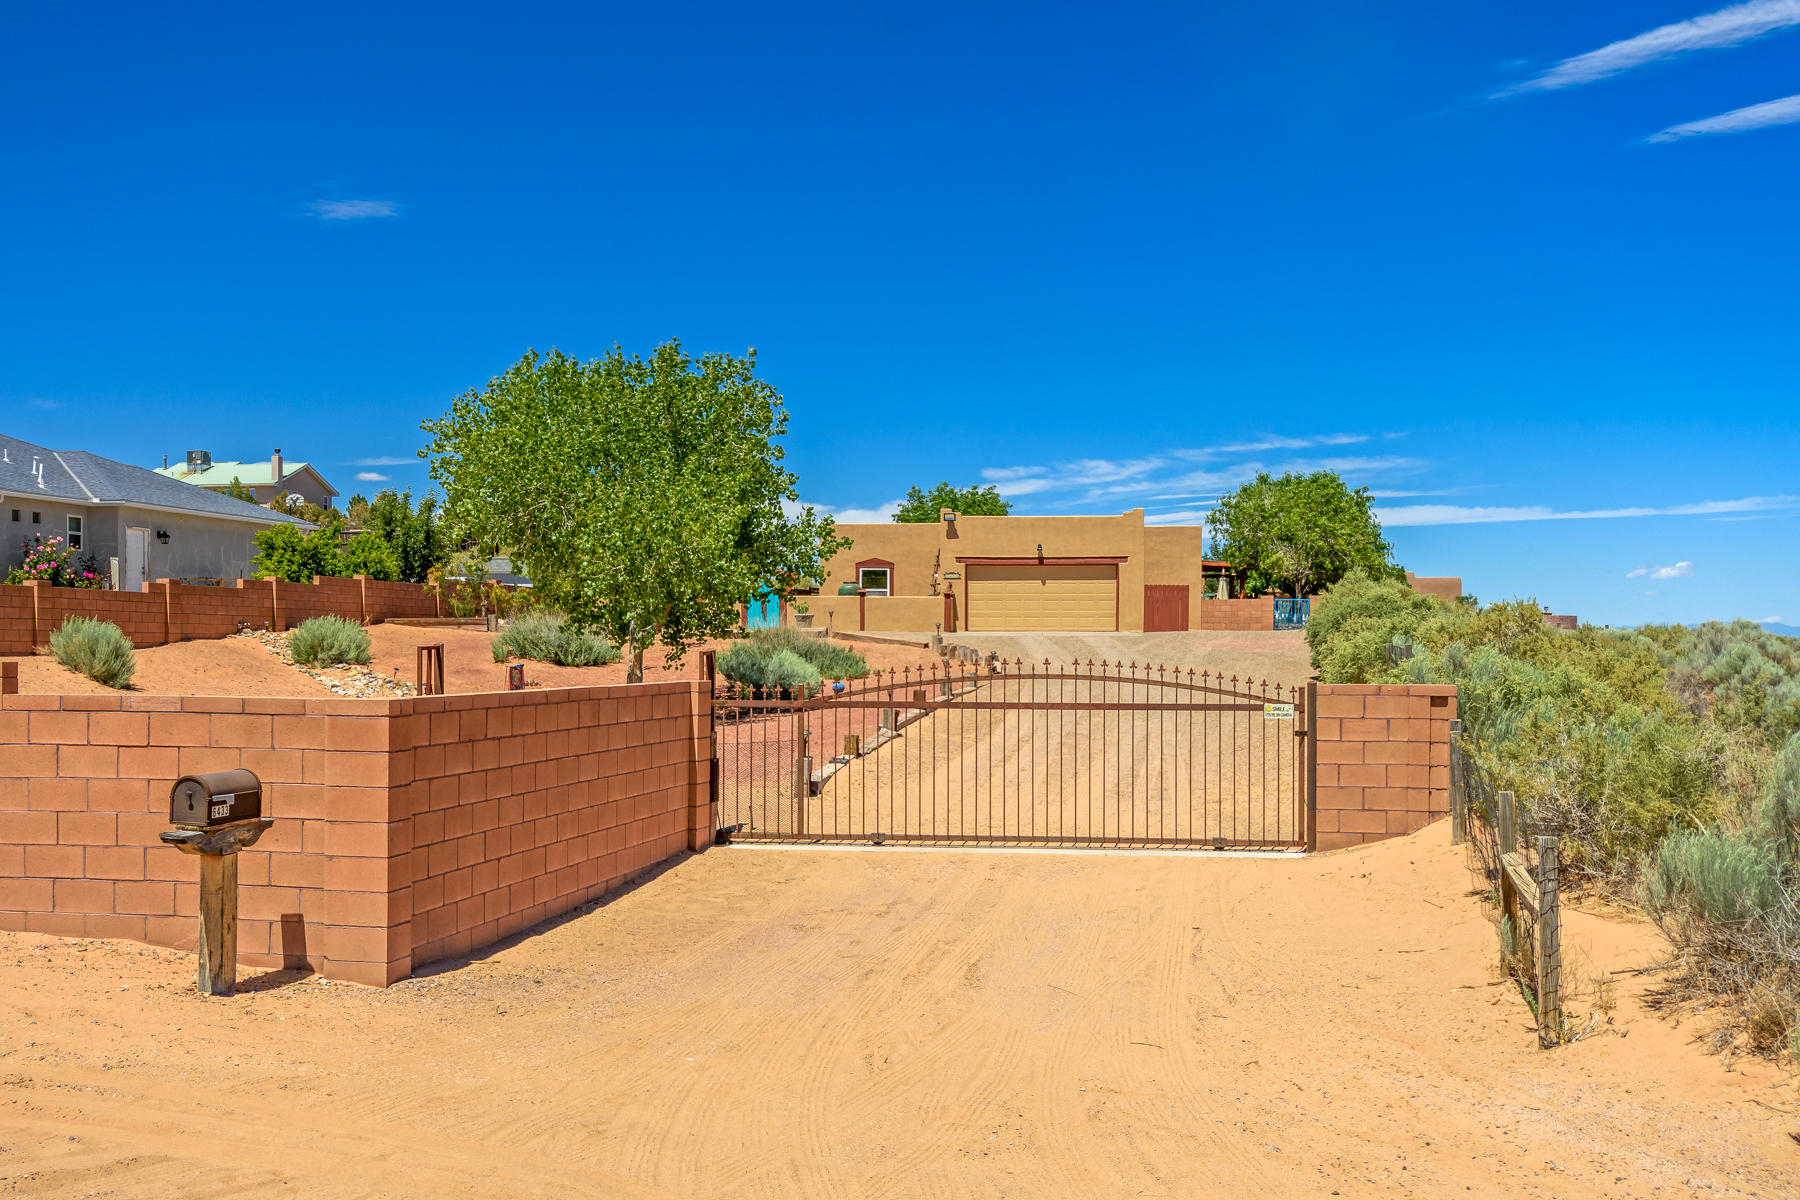 6433 MAGDALENA Road NE, Rio Rancho, NM 87144 - Rio Rancho, NM real estate listing